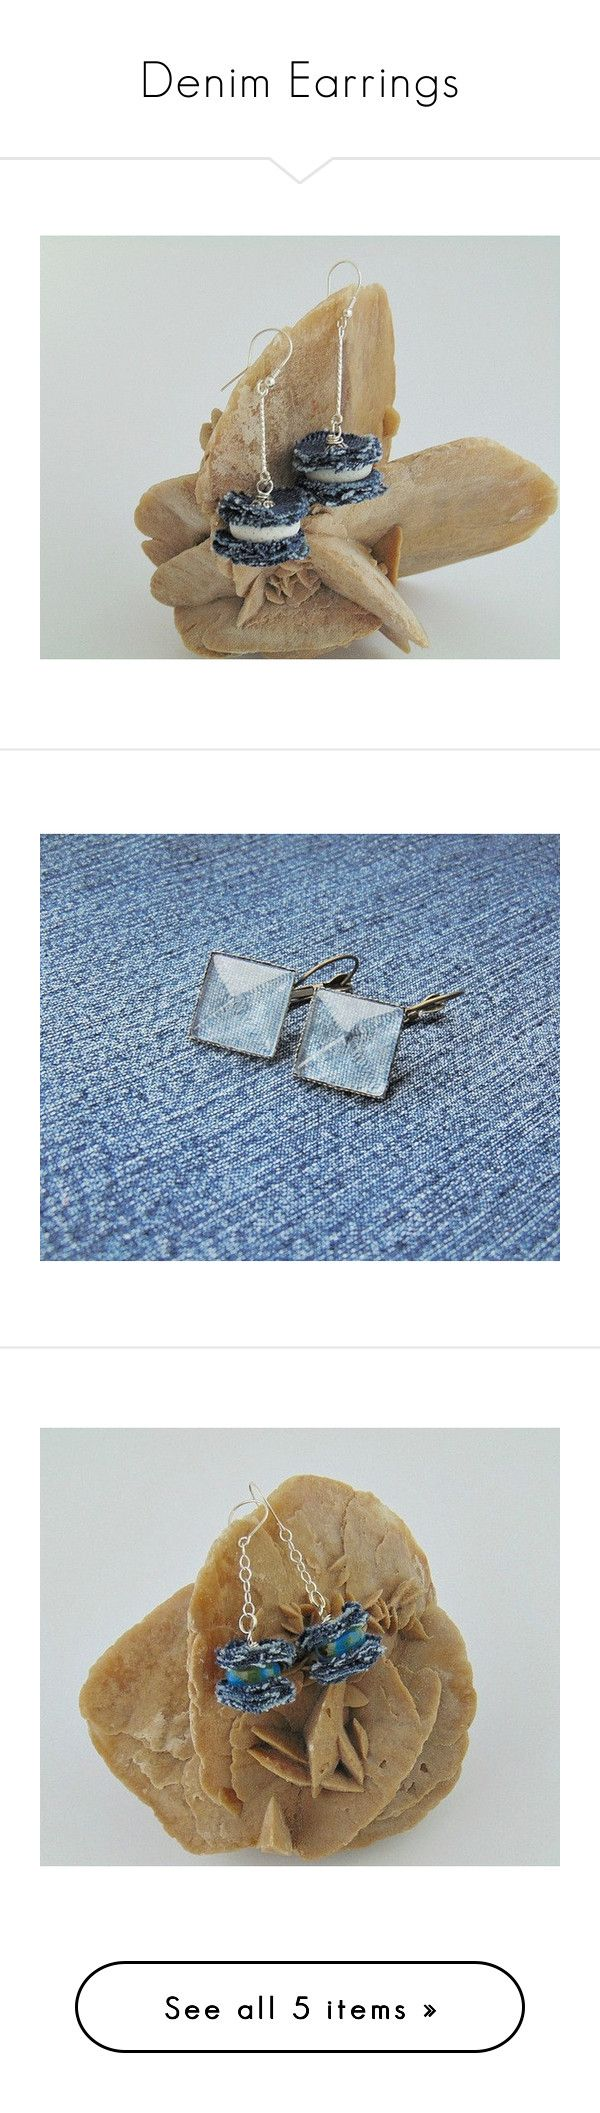 """""""Denim Earrings"""" by styledonna on Polyvore featuring jewelry, earrings, earrings jewelry, dangle earrings, denim jewelry, white earrings, coral jewellery, blue jewelry, denim earrings i blue earrings"""